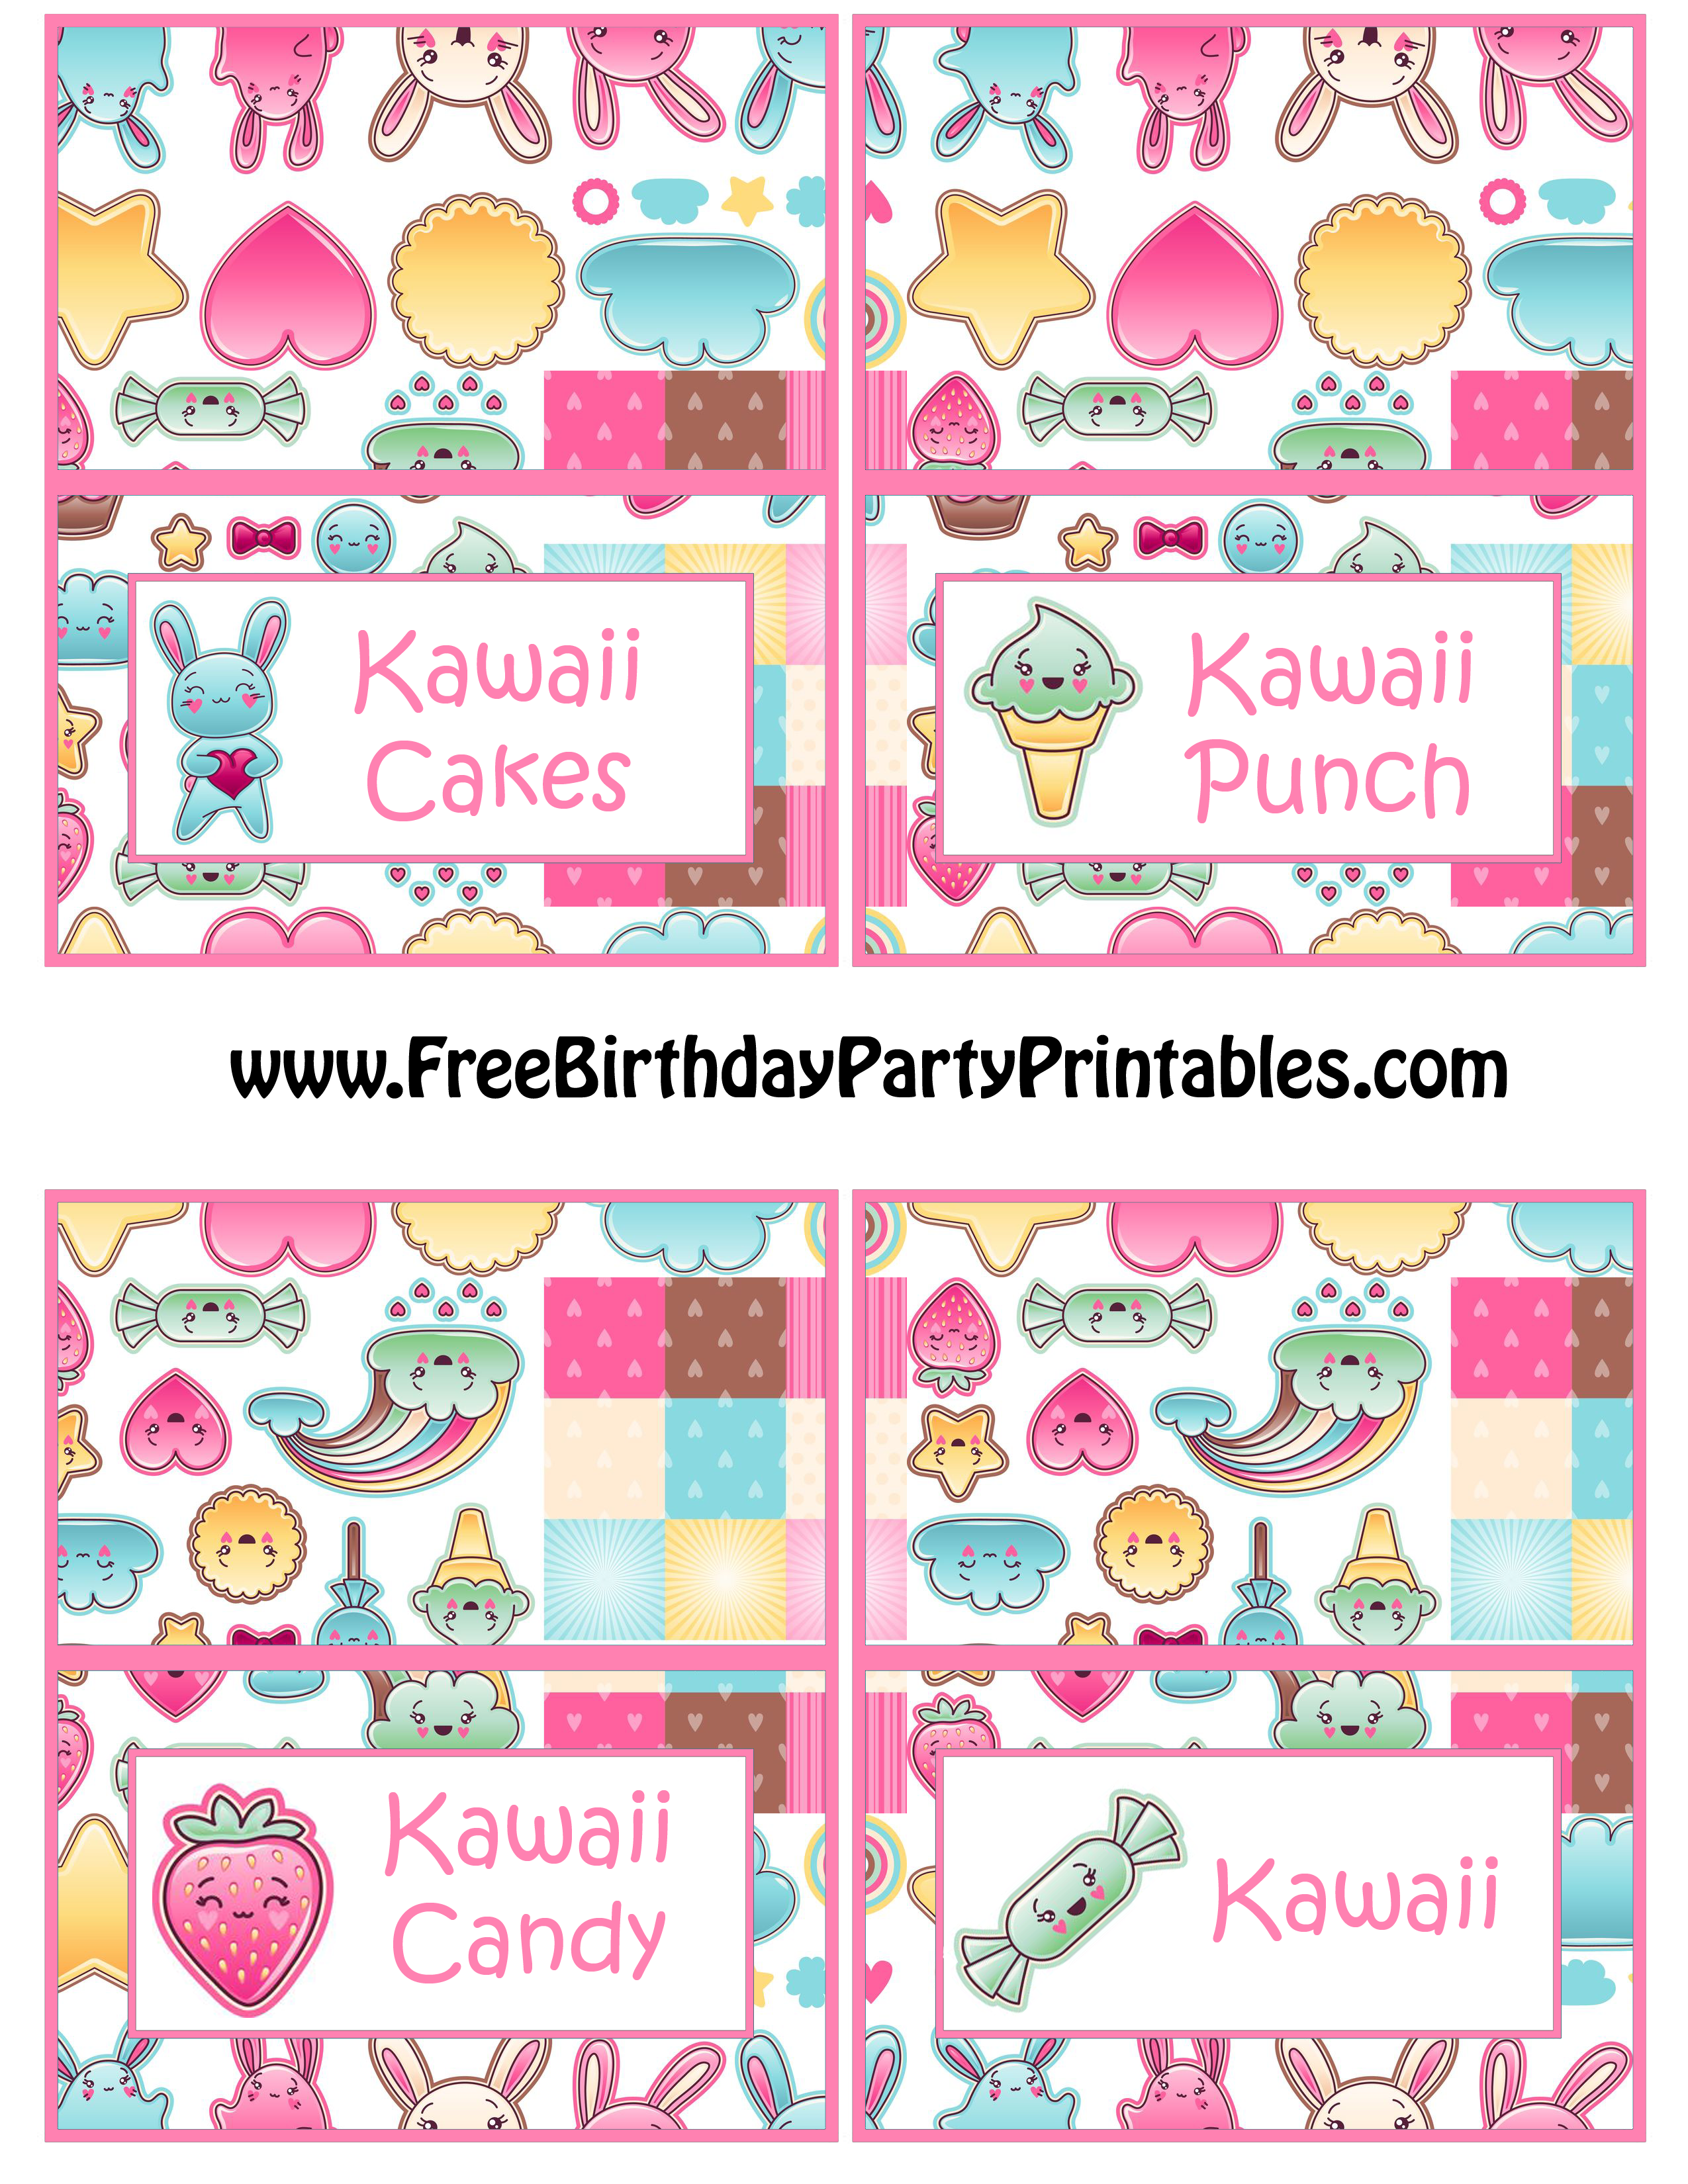 Kawaii Bunny Birthday Party Food Card Template by Free Birthday